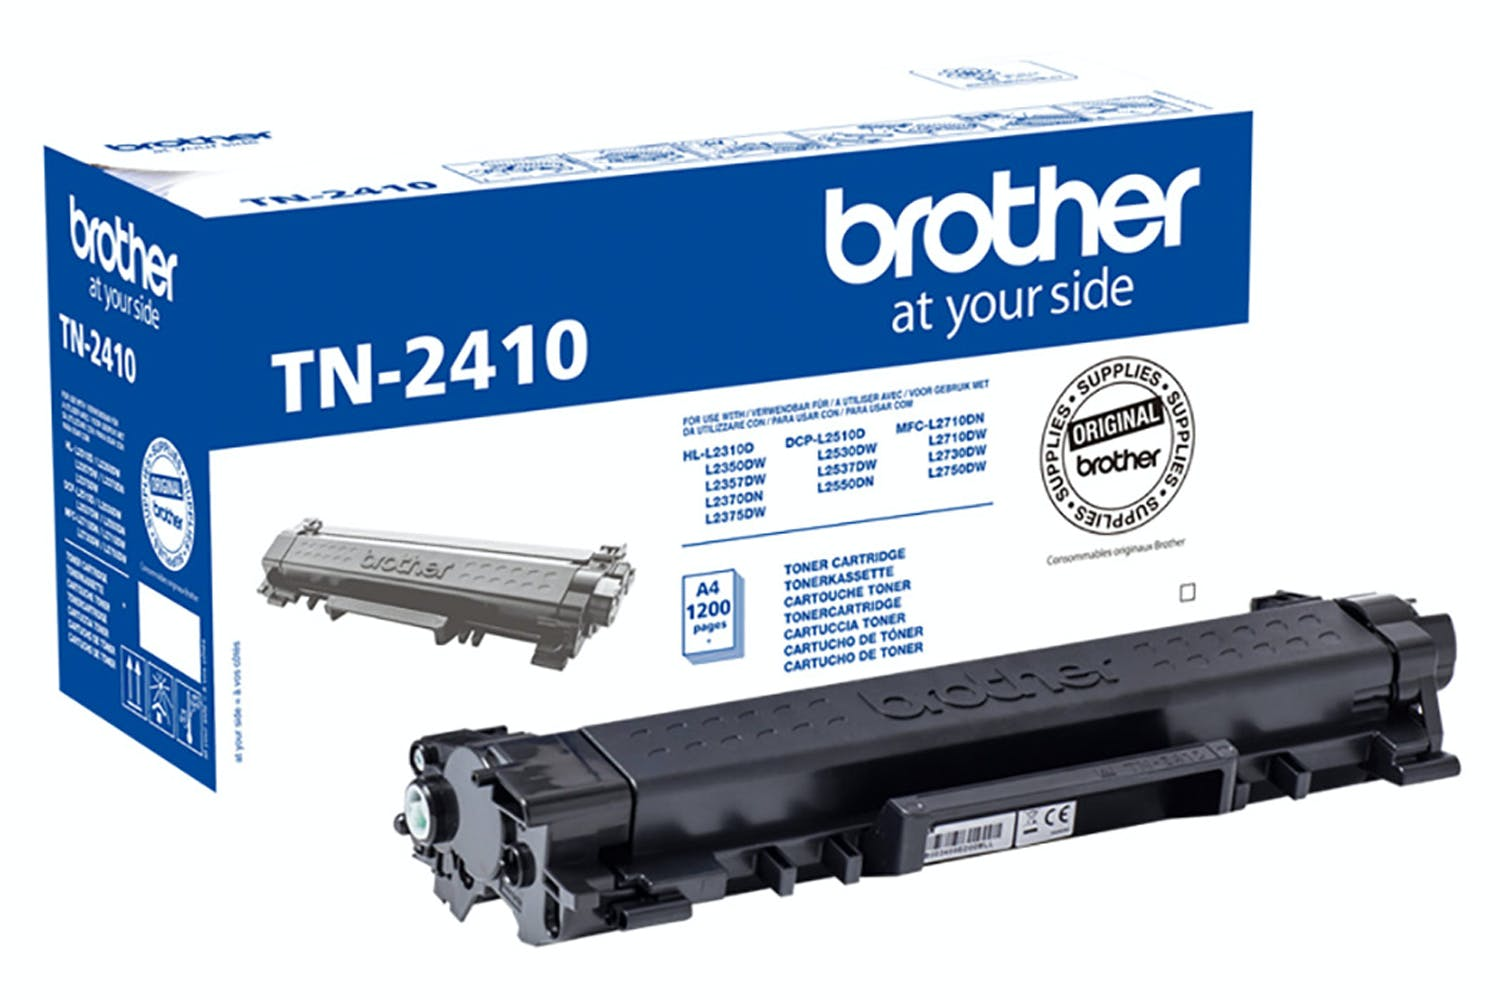 Brother TN-2410 Toner Cartridge | Black